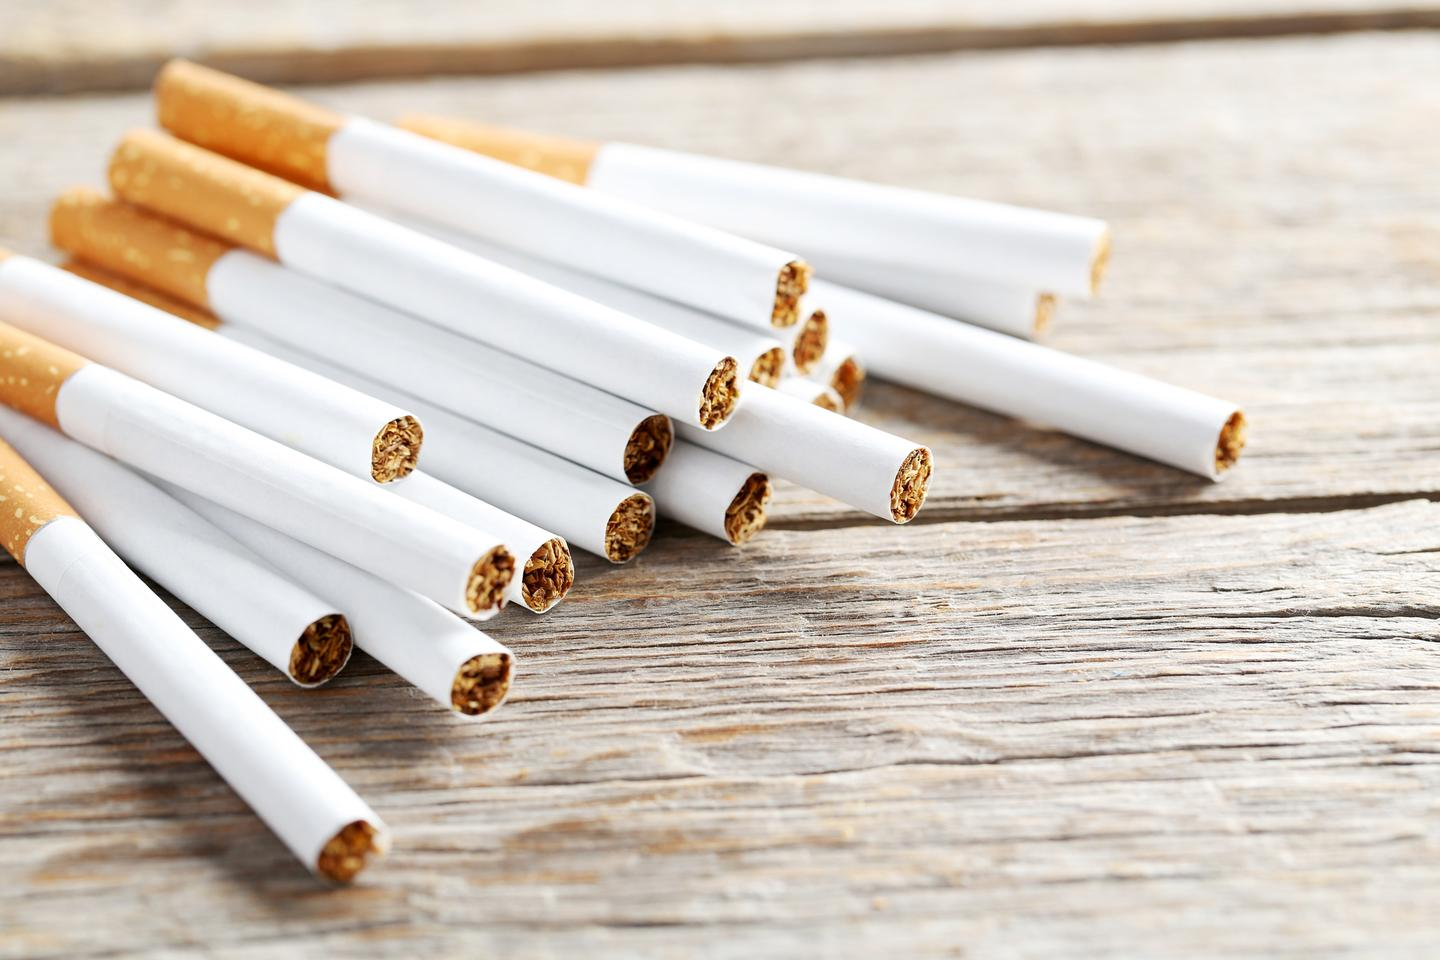 The approval of two new low-nicotine cigarettes comes a month after the FDA seemingly backed down on general plans to regulate nicotine levels in cigarettes